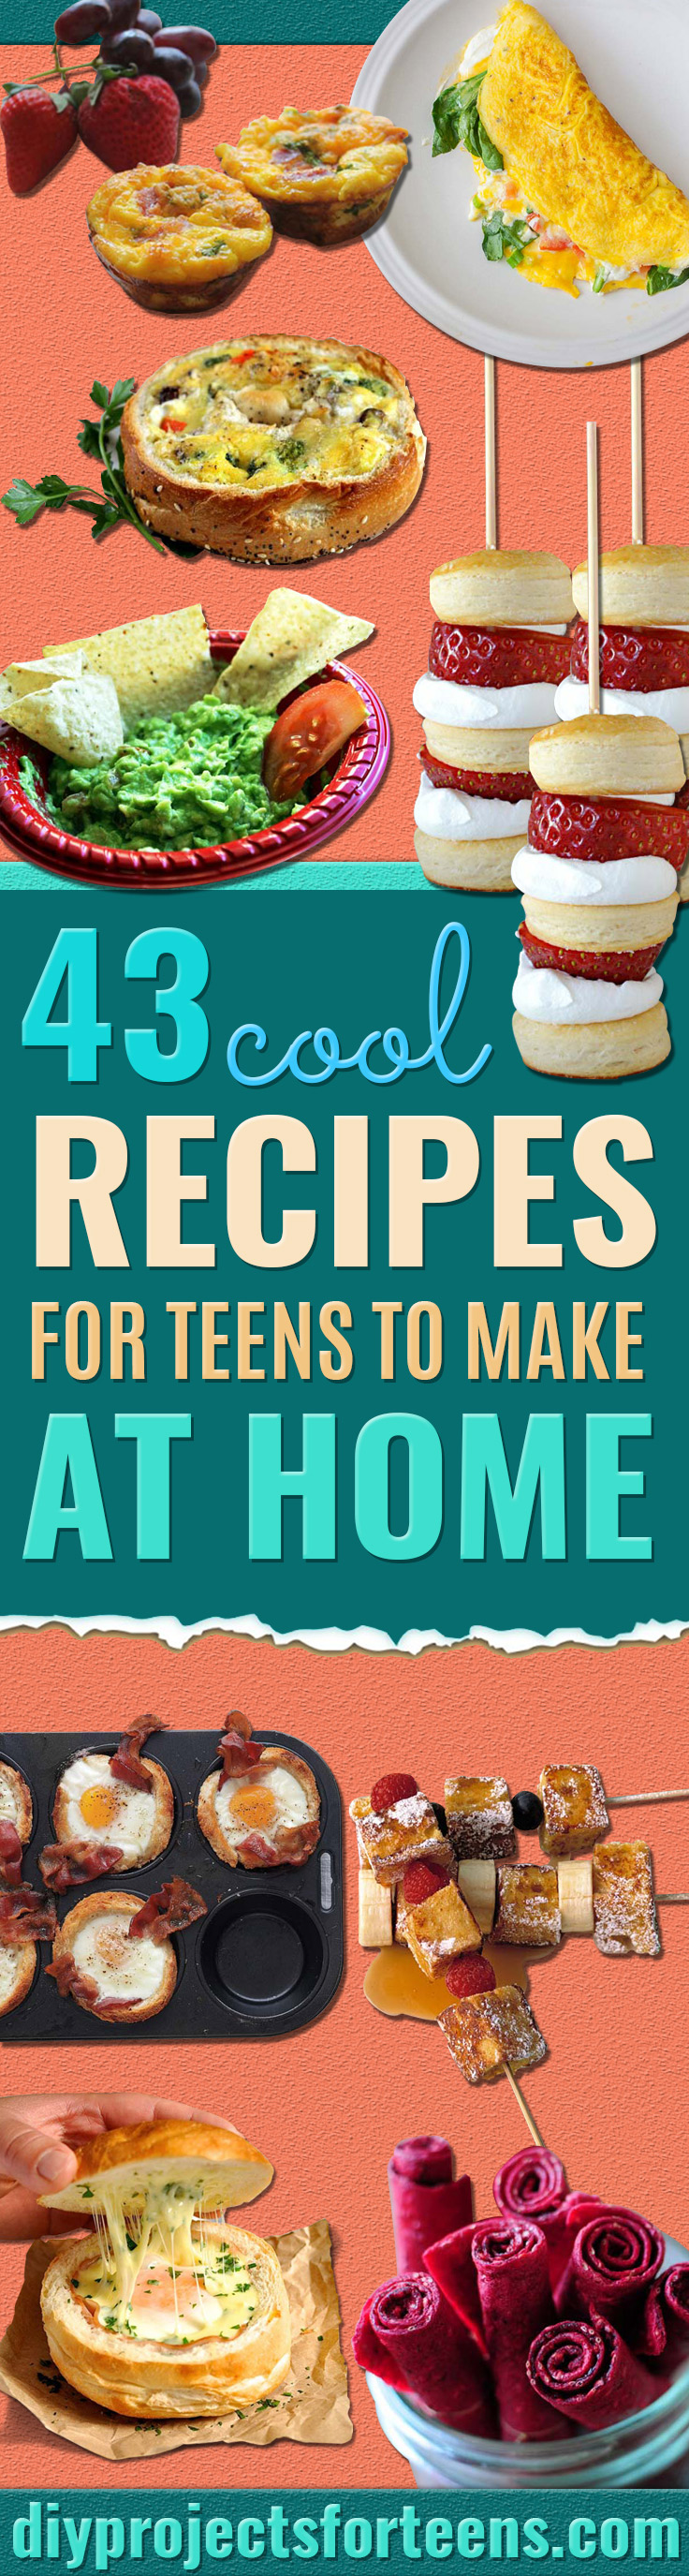 43 cool recipes for teens to make at home